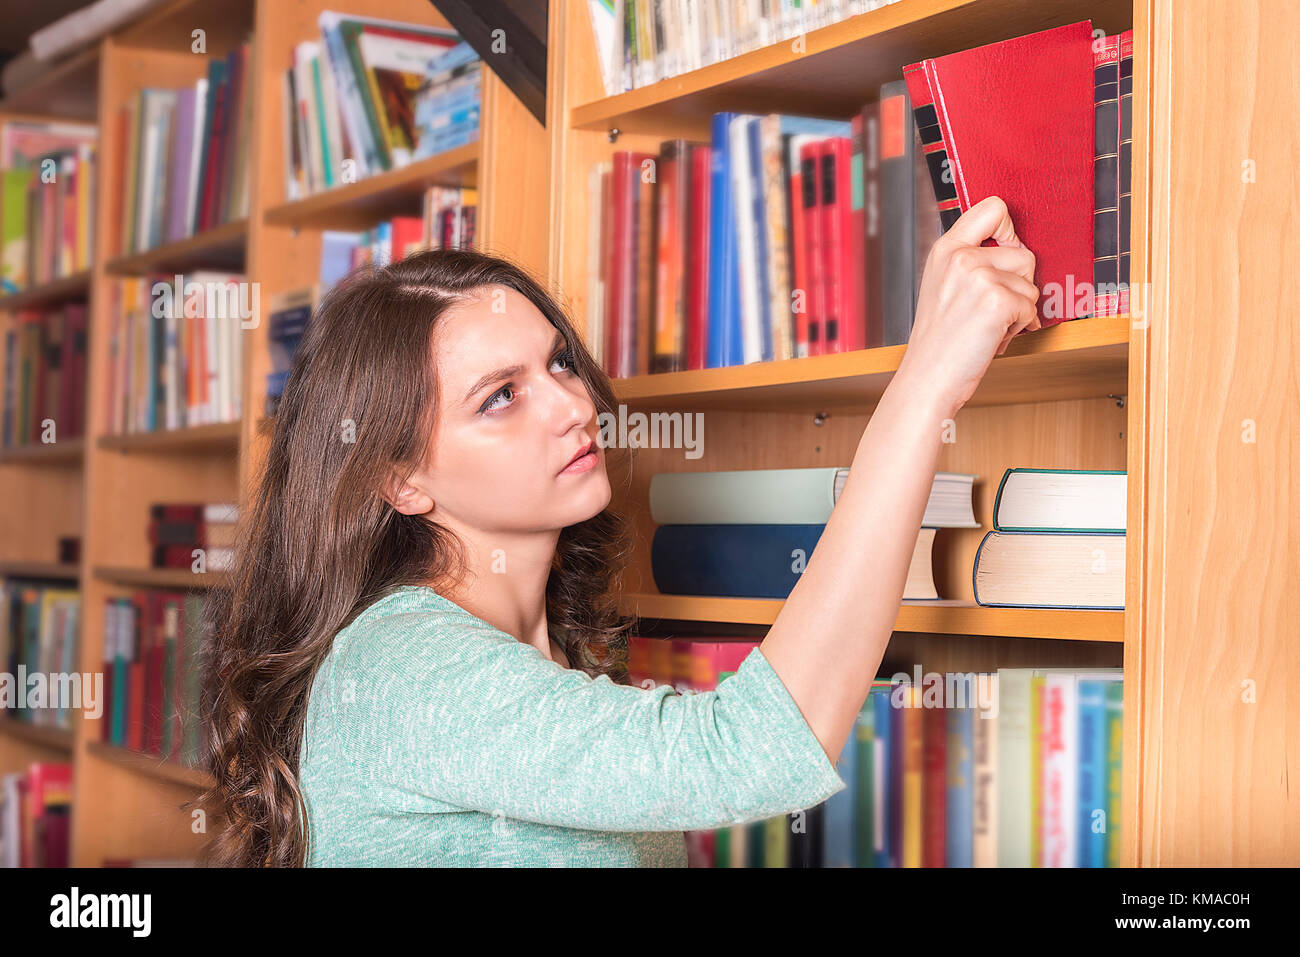 Education theme image with a beautiful girl taking a book from a library in order to study or enjoying a novel in - Stock Image